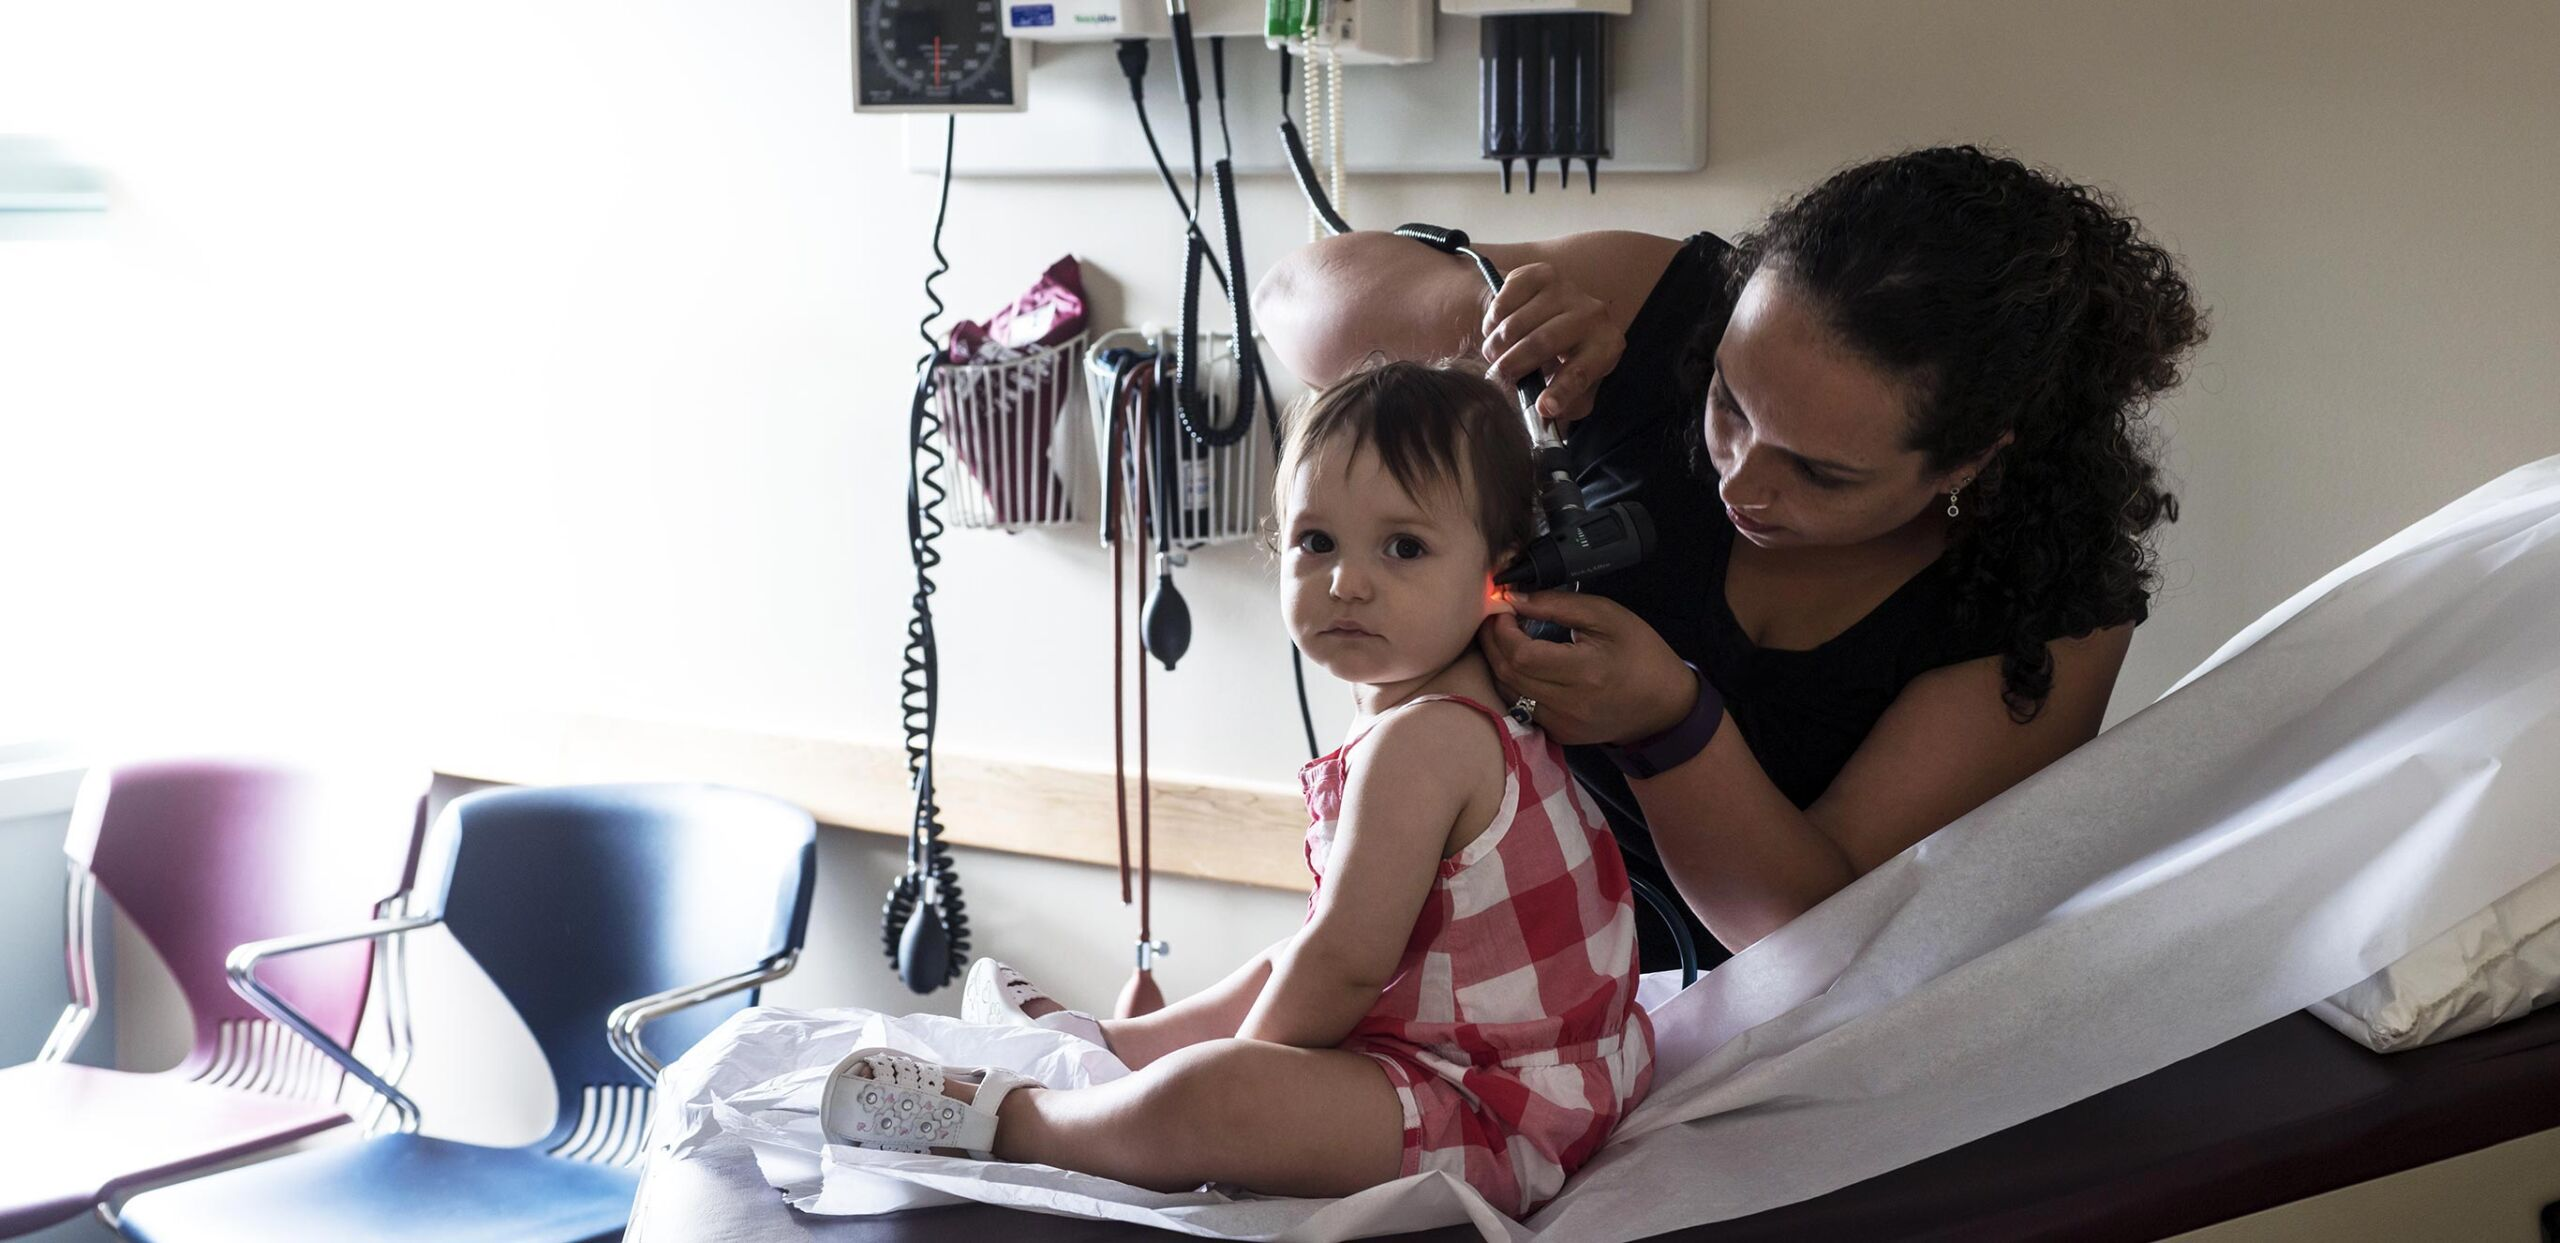 Dr. Yarima Santiago examines a young patient at Cooley Dickinson Medical Group Amherst Medical Associates, Amherst, MA 01002.